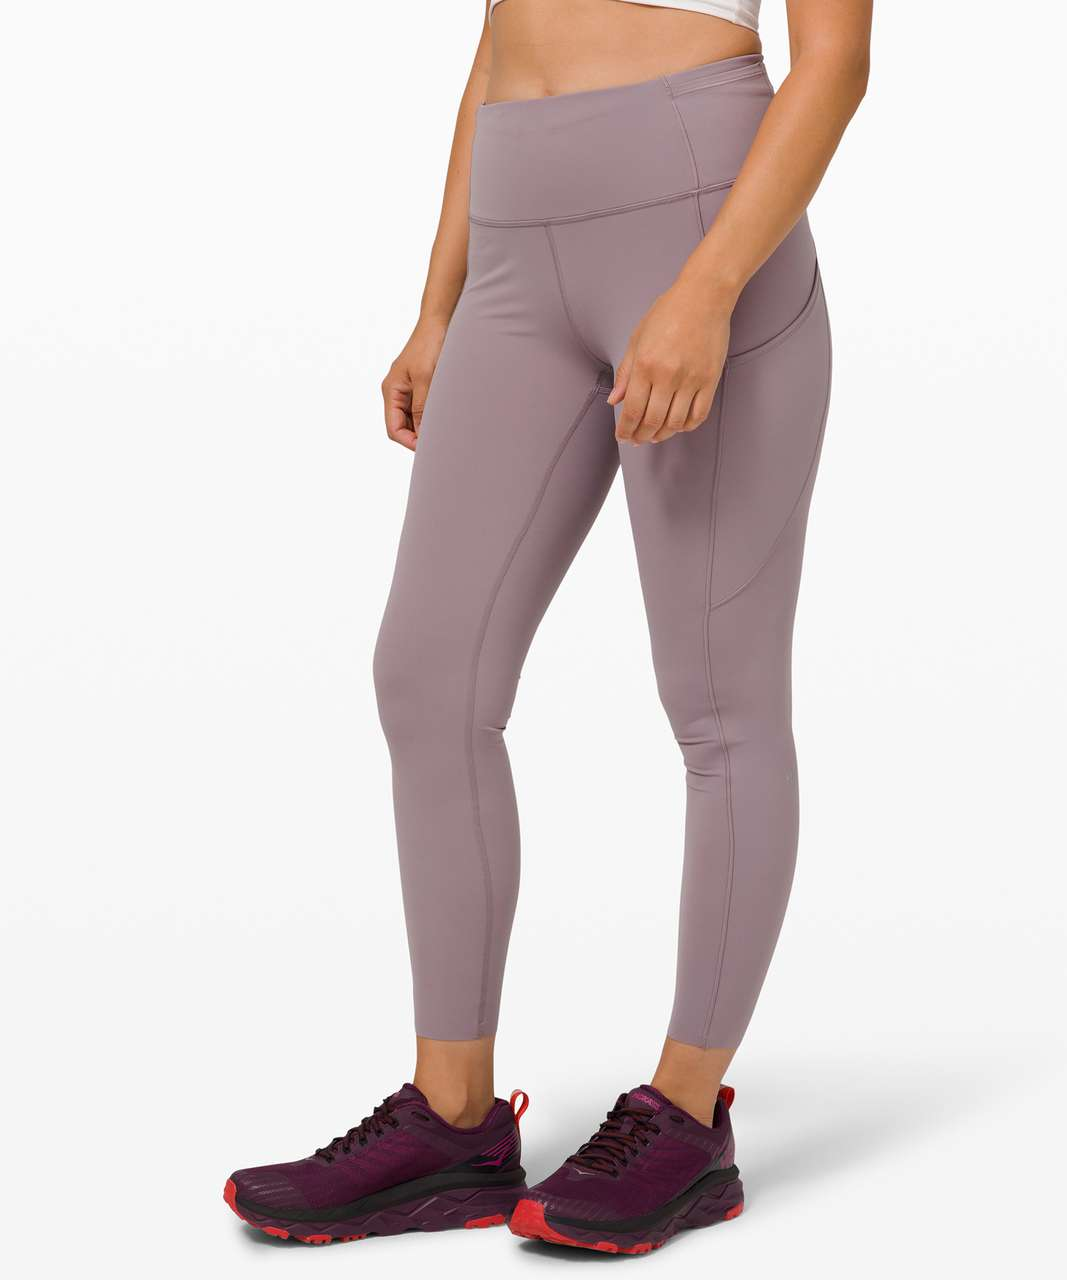 "Lululemon Fast and Free Tight II 25"" *Non-Reflective Nulux - Violet Verbena"